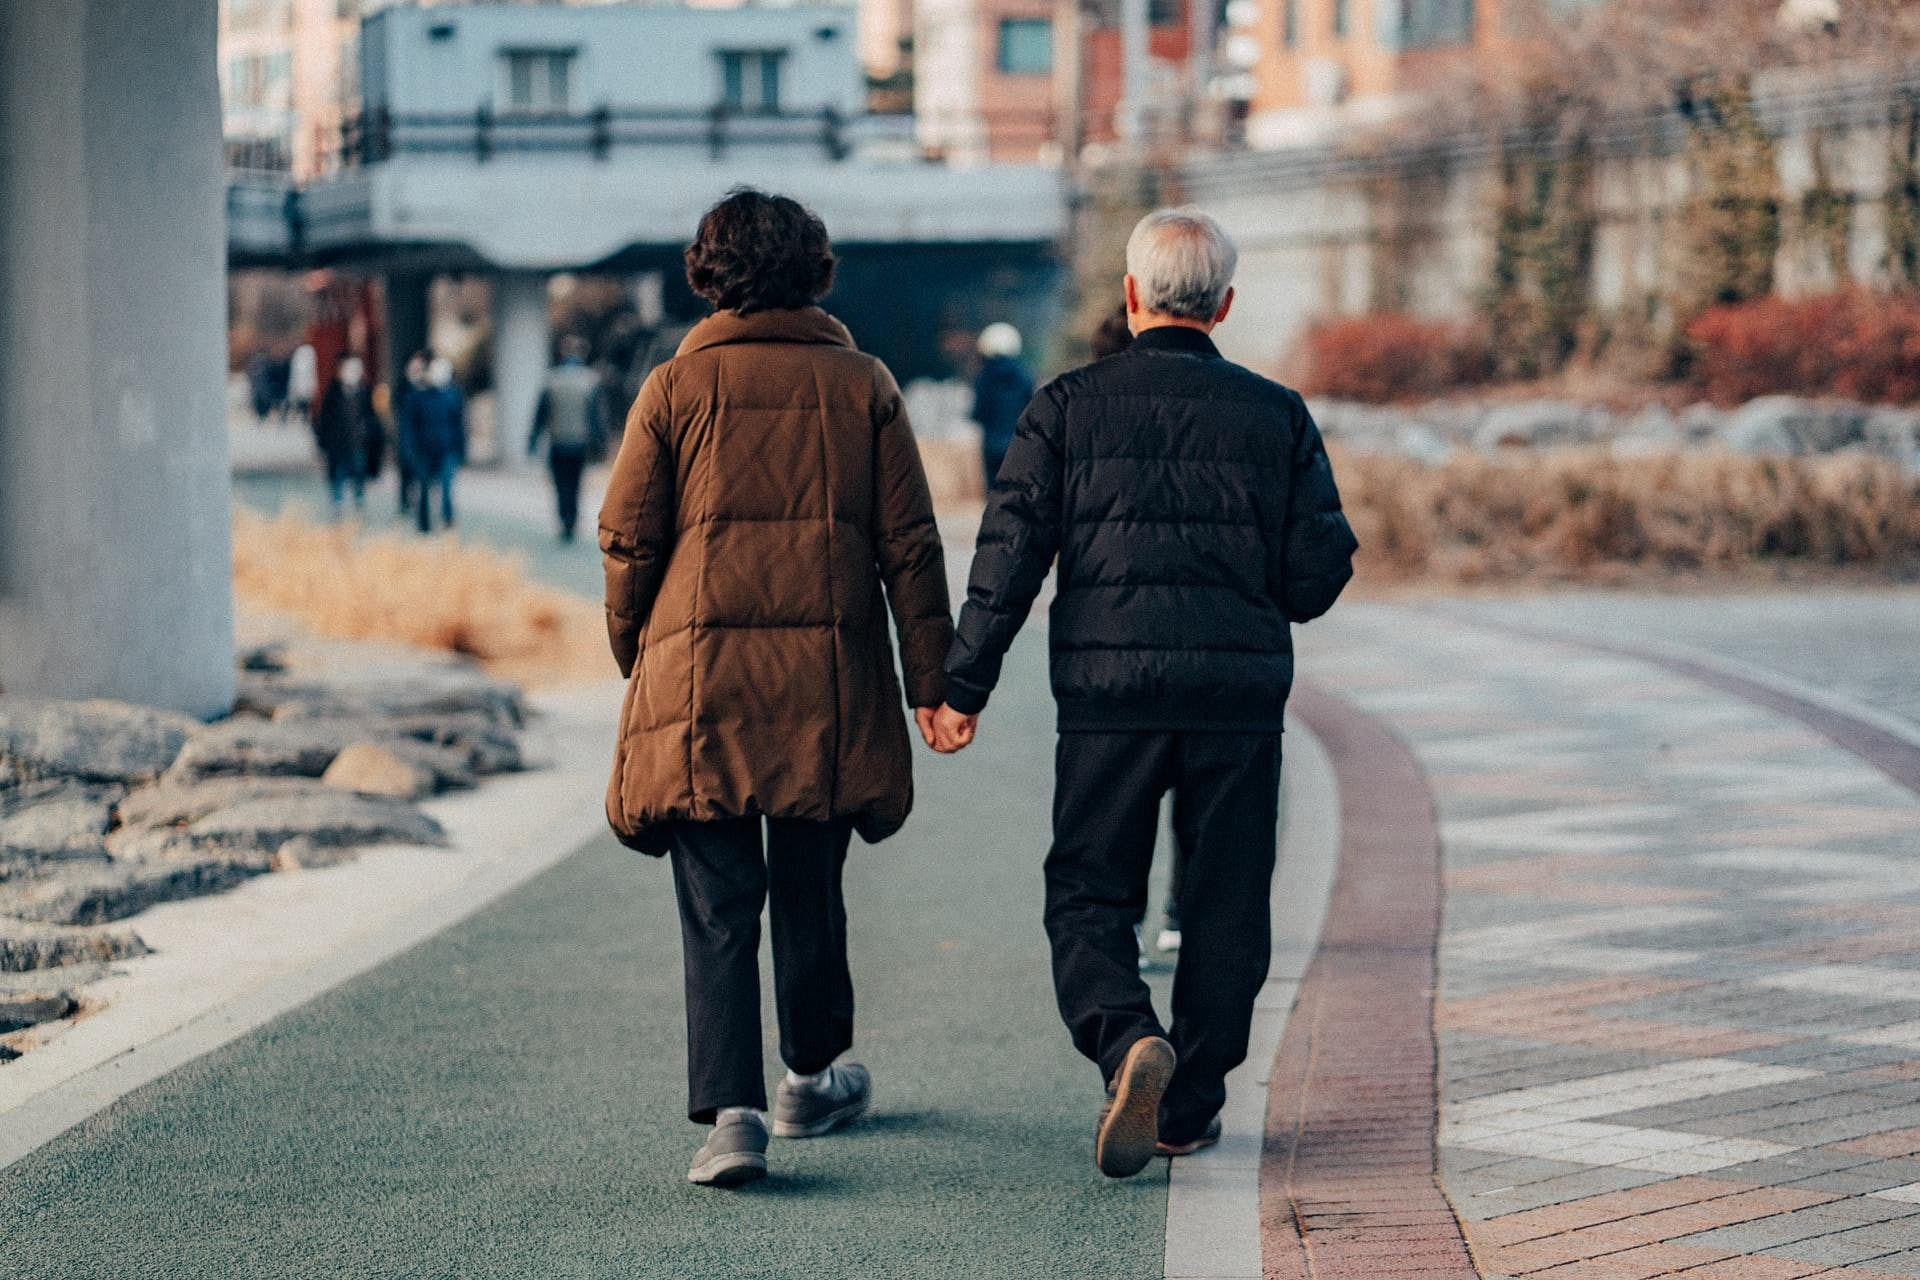 Why is dating hard after 50?